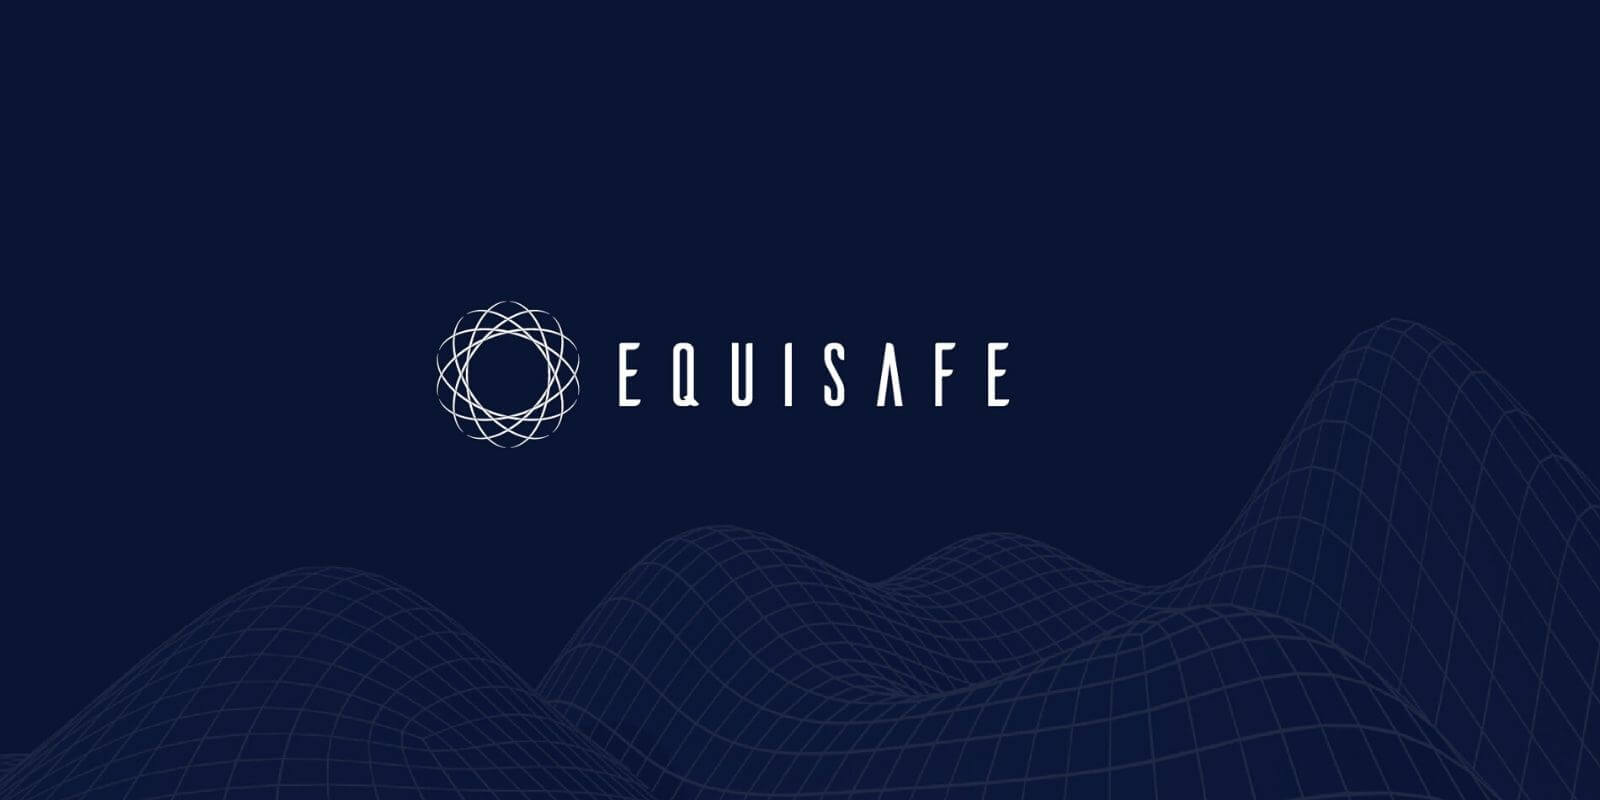 Equisafe, interview du CEO Bilal El alamy